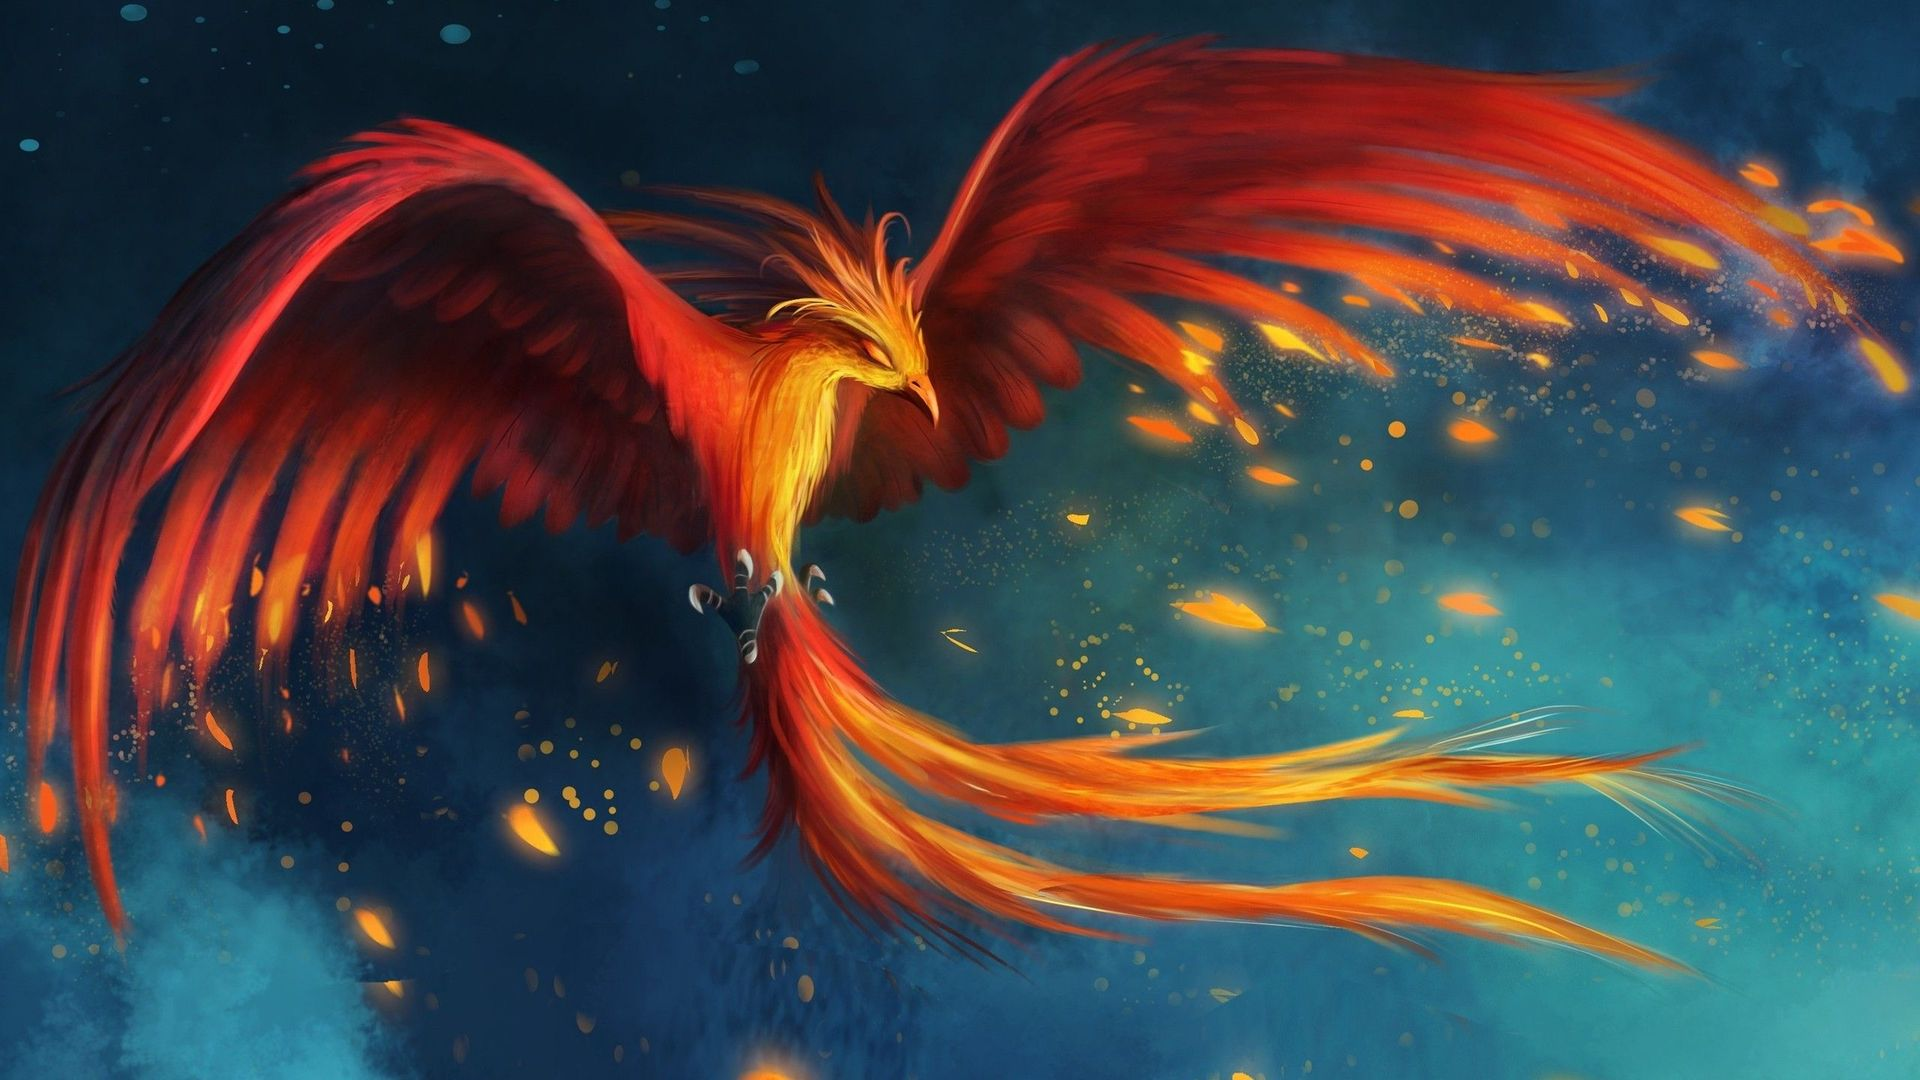 Fantasy Phoenix Wallpaper 5 Background Wallpaper 1920x1080